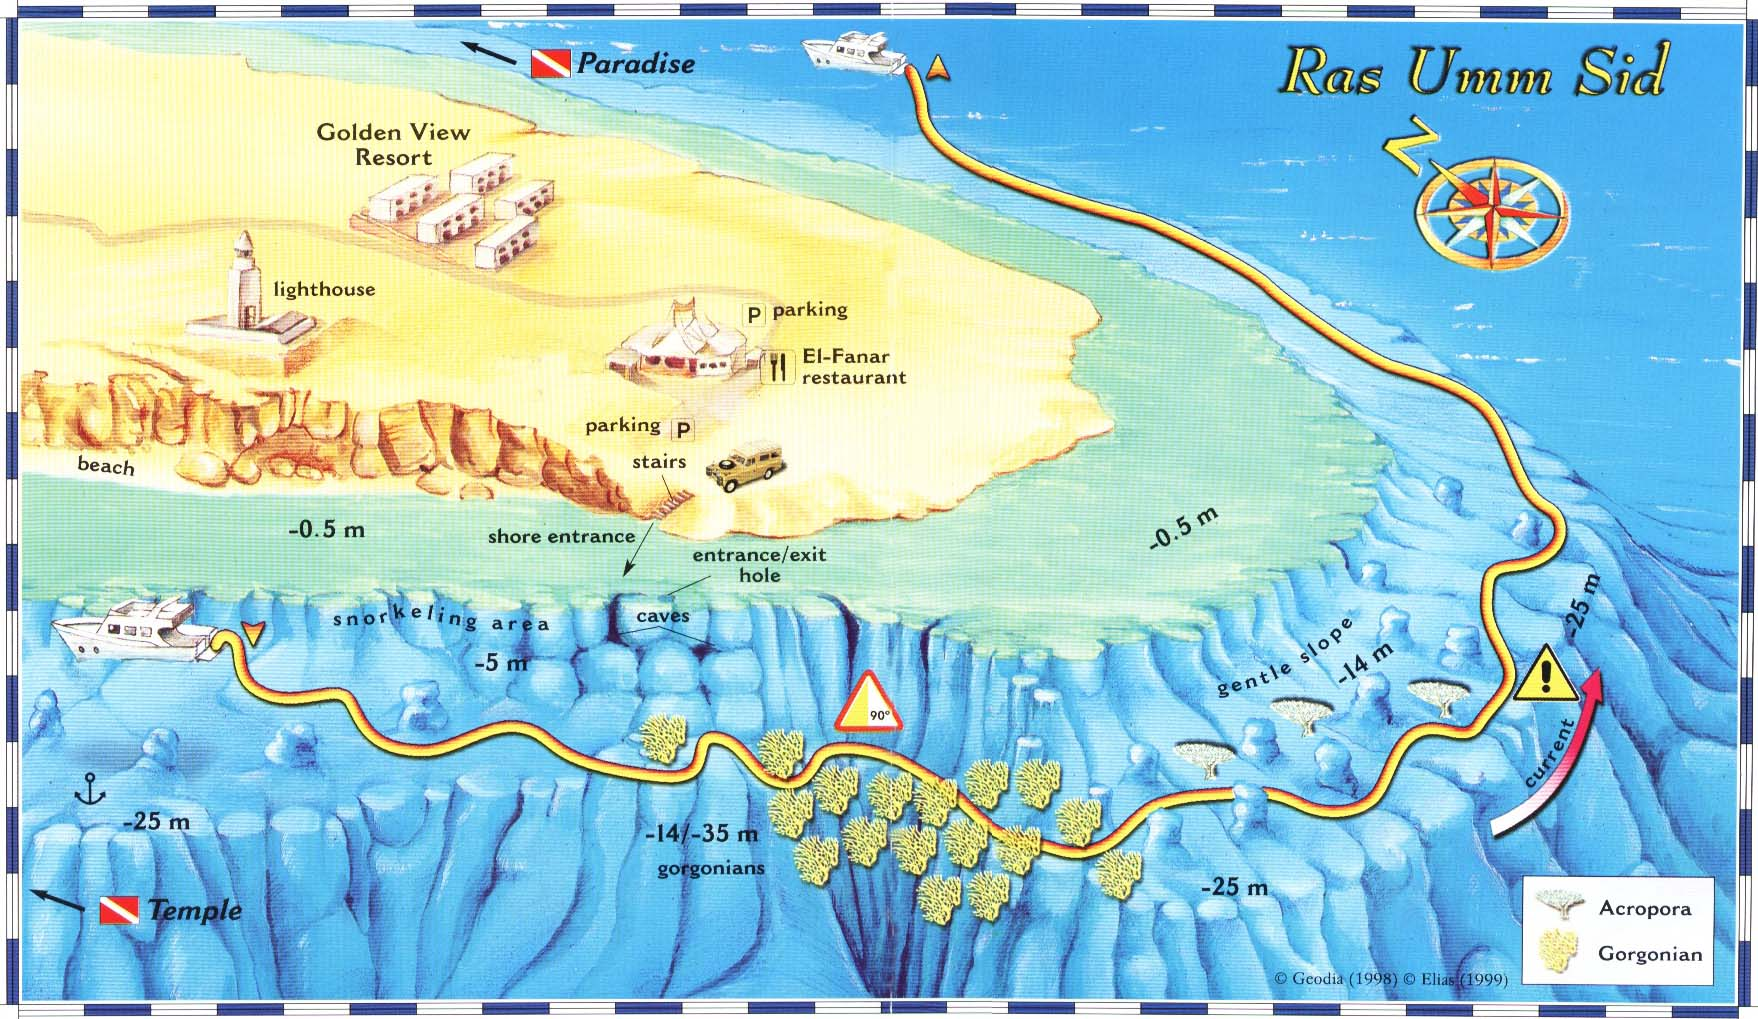 Sharm el sheikh dive sites red sea diving packages egypt scuba diving ras umm sidd diving site map gumiabroncs Choice Image